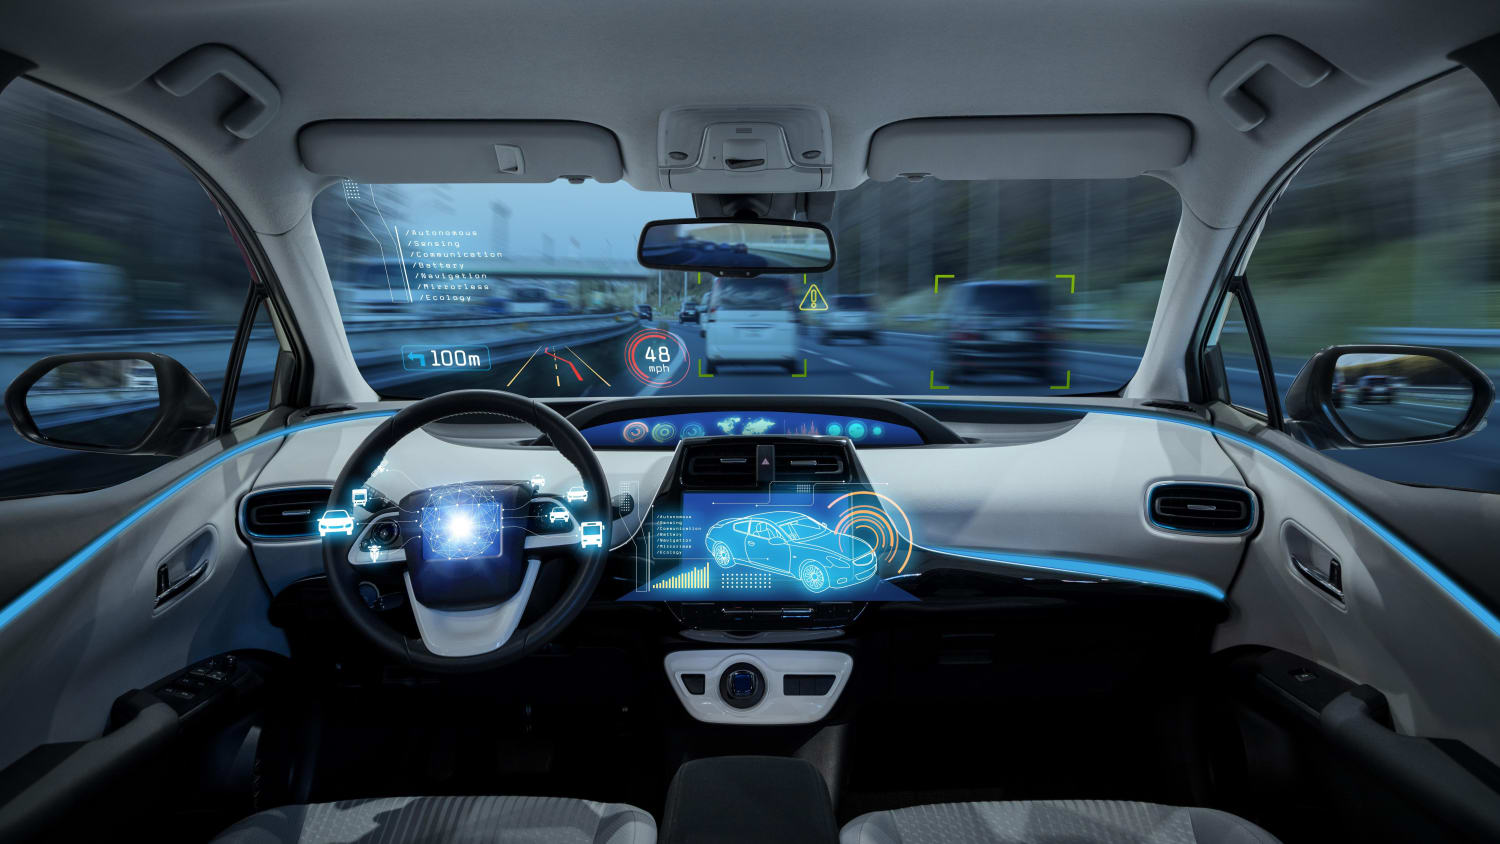 The innovative tech gadgets that making driving safer